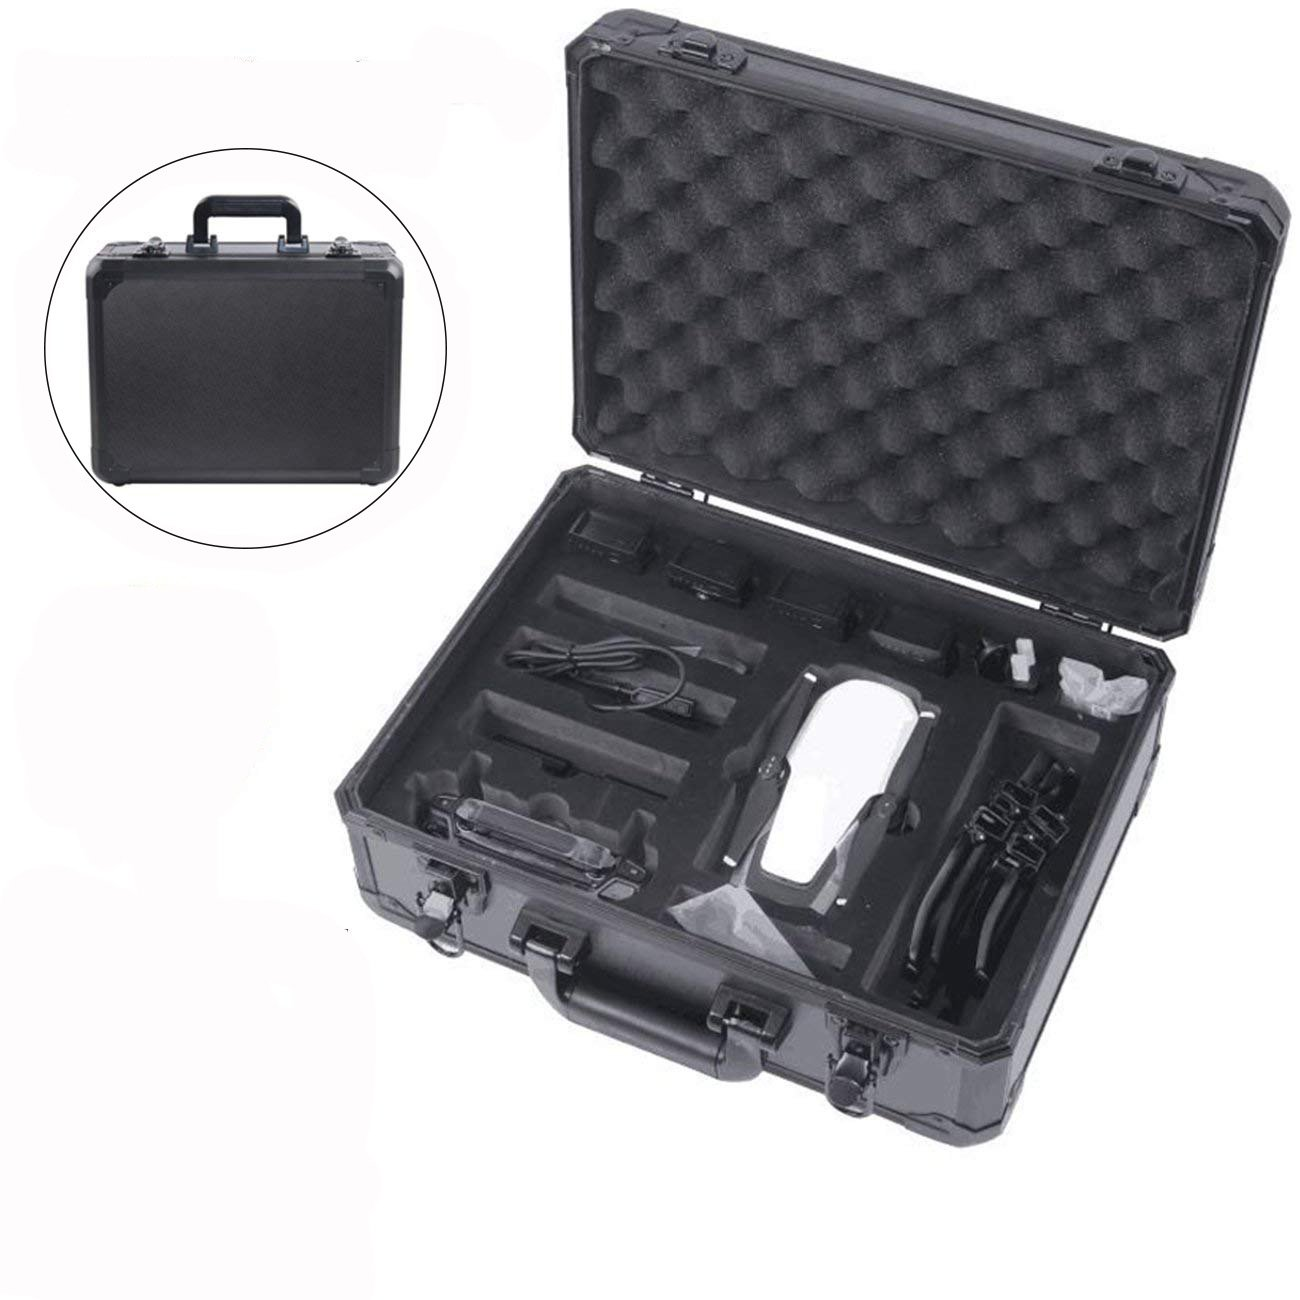 Hobby-Ace DJI Mavic Air Drone Carrying Case,Aluminum Protective Hardshell Waterproof case for DJI Mavic Air Drone and Accessories